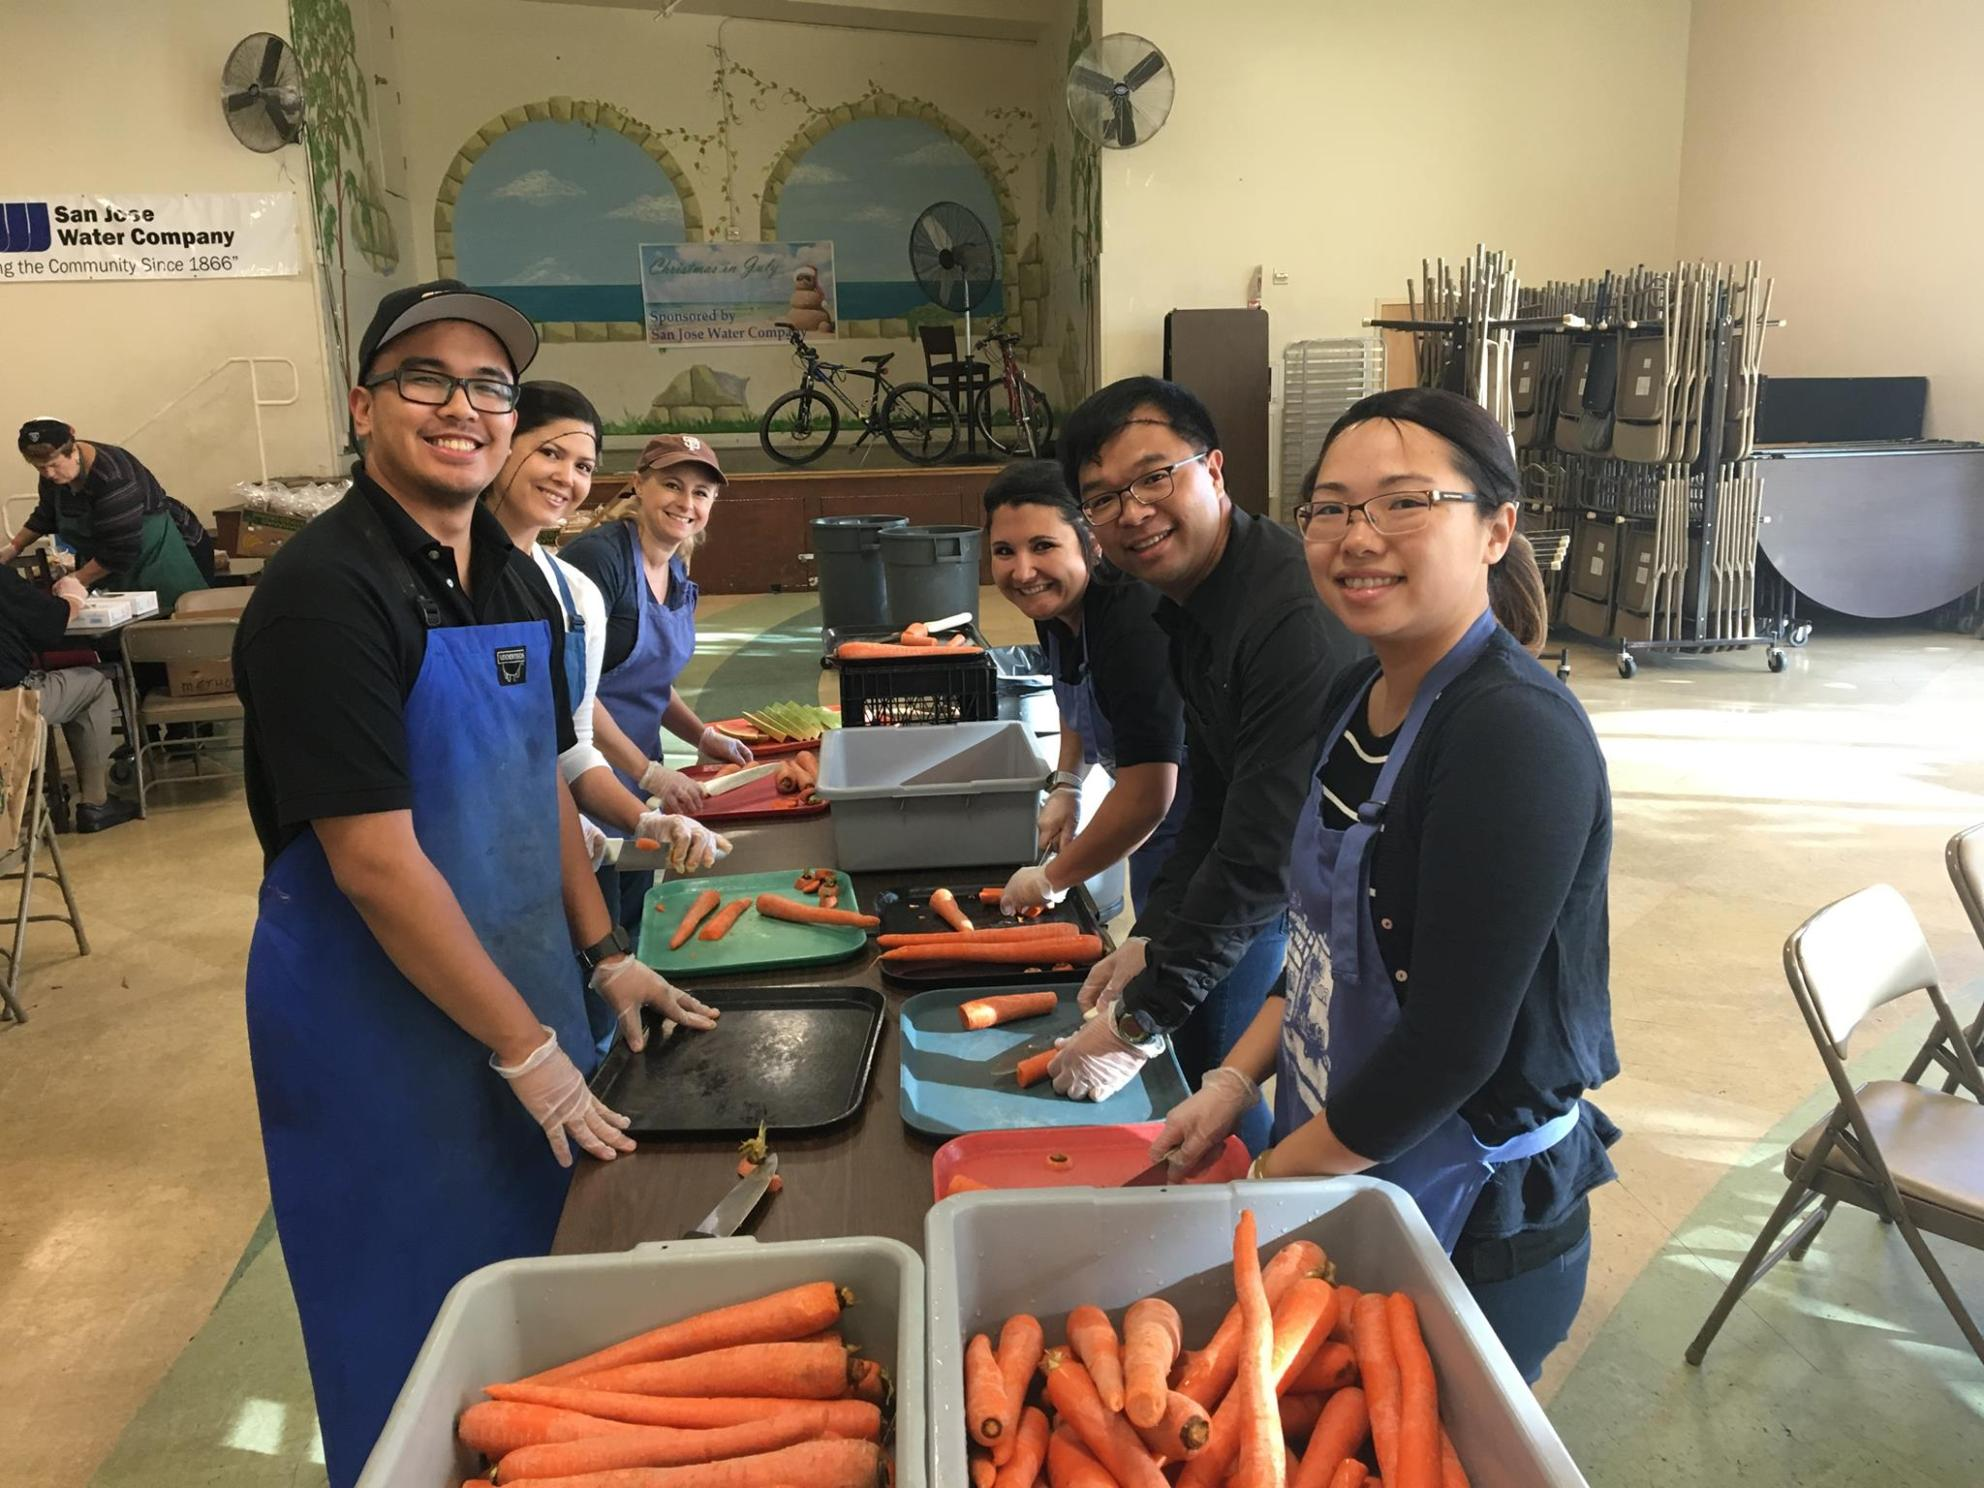 Team members serving healthy food